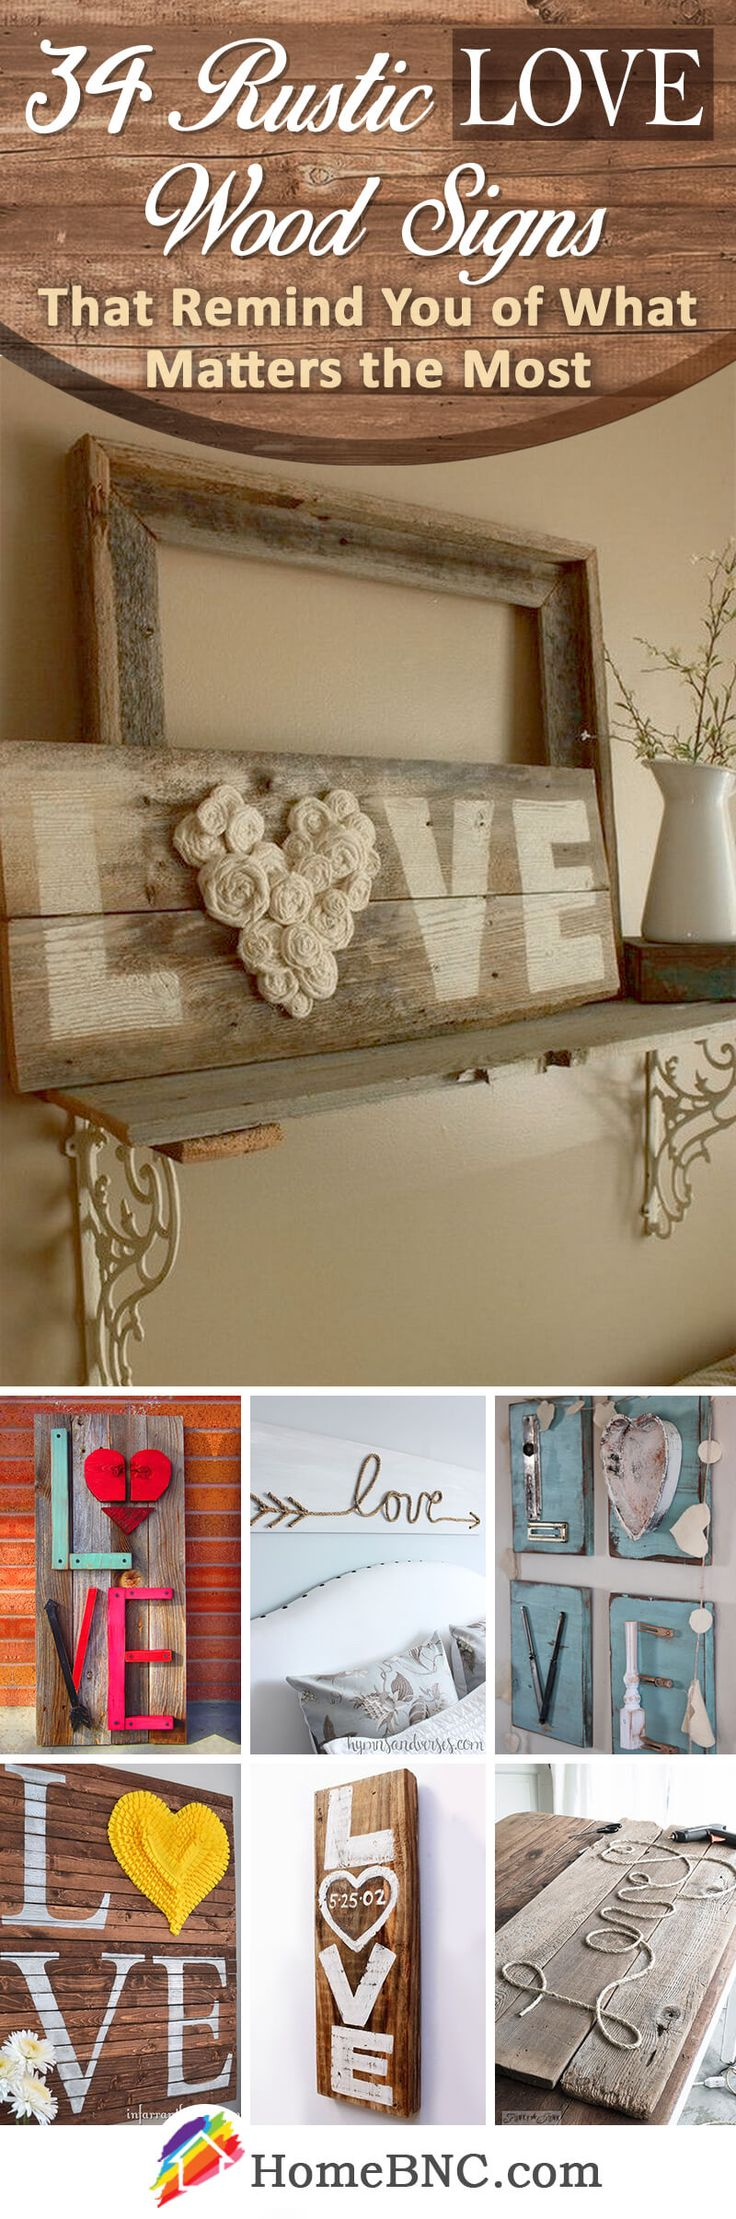 34 Best LOVE Wood Sign Ideas and